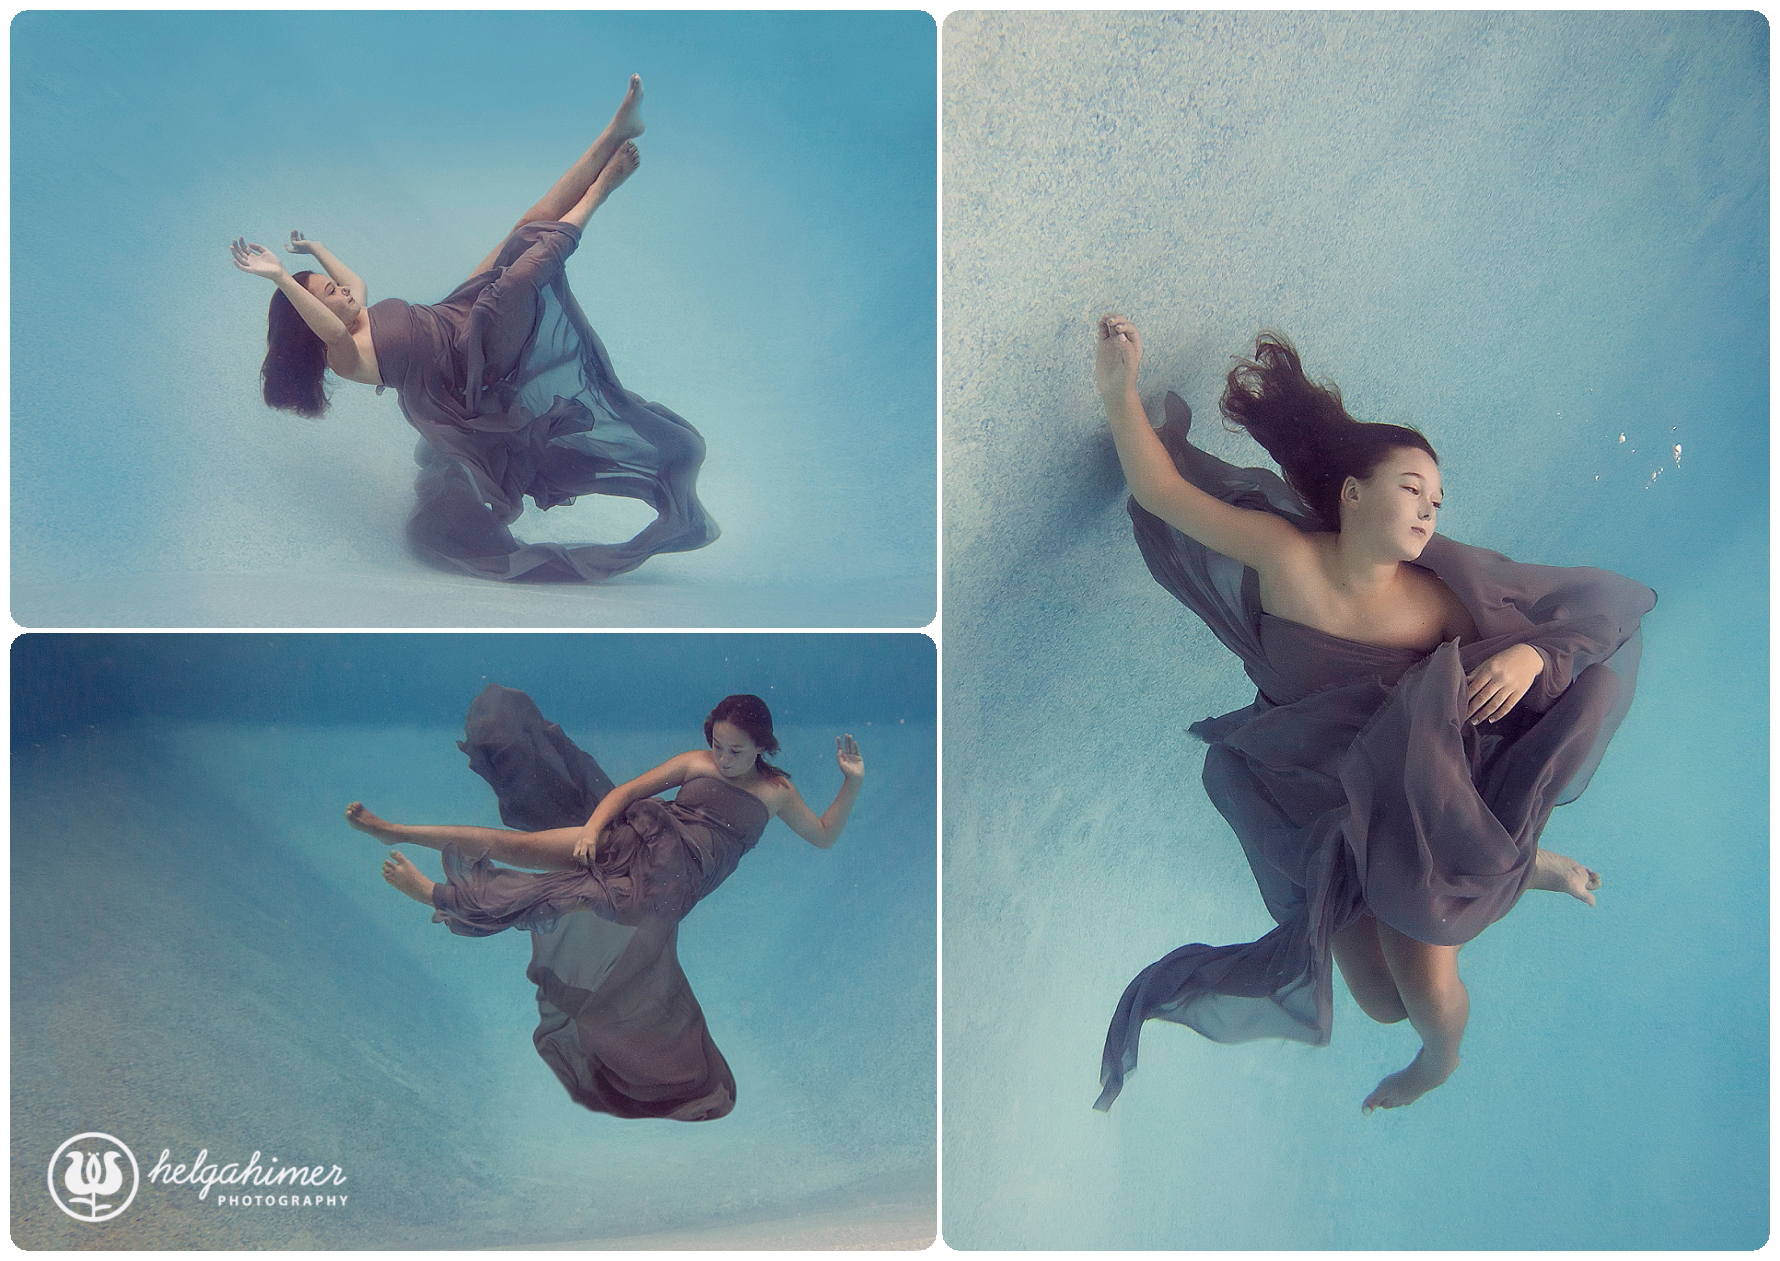 underwater photography sudbury girl swimming in water synchronized swimmer helga himer photography